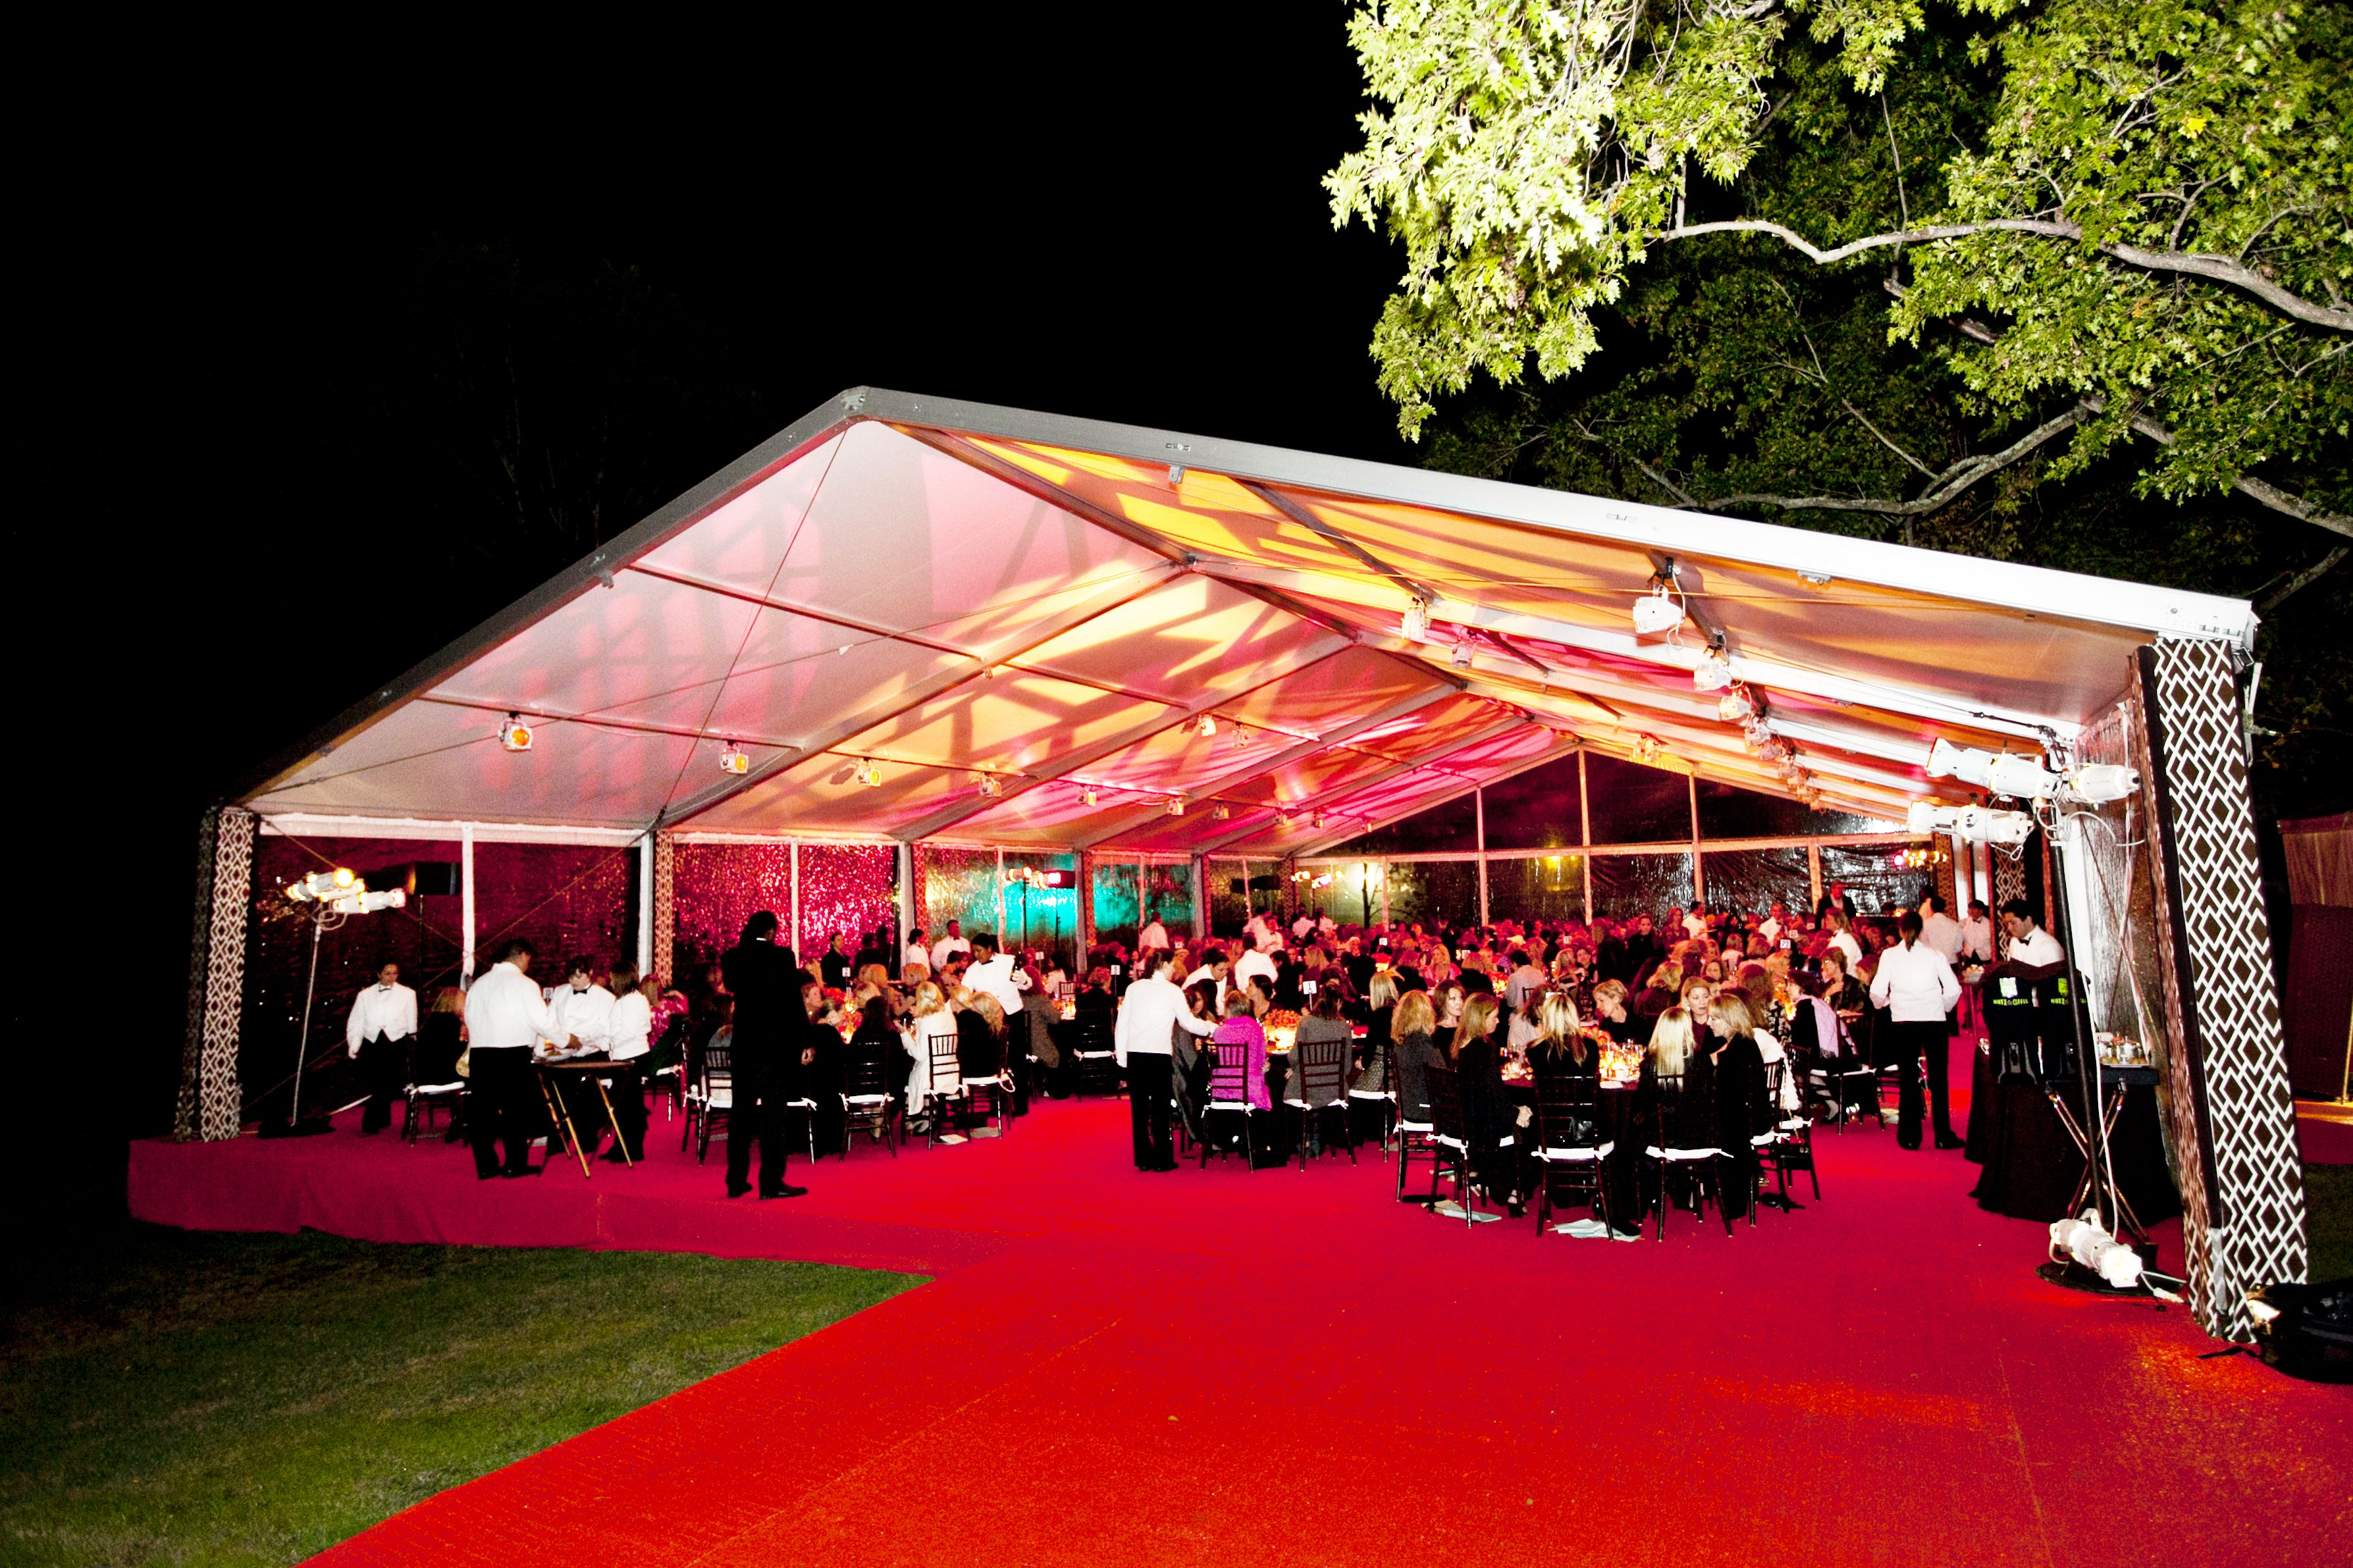 Tented event white tent large outdoor party large outdoor event black linen  sc 1 st  Pinterest & Tented event white tent large outdoor party large outdoor event ...